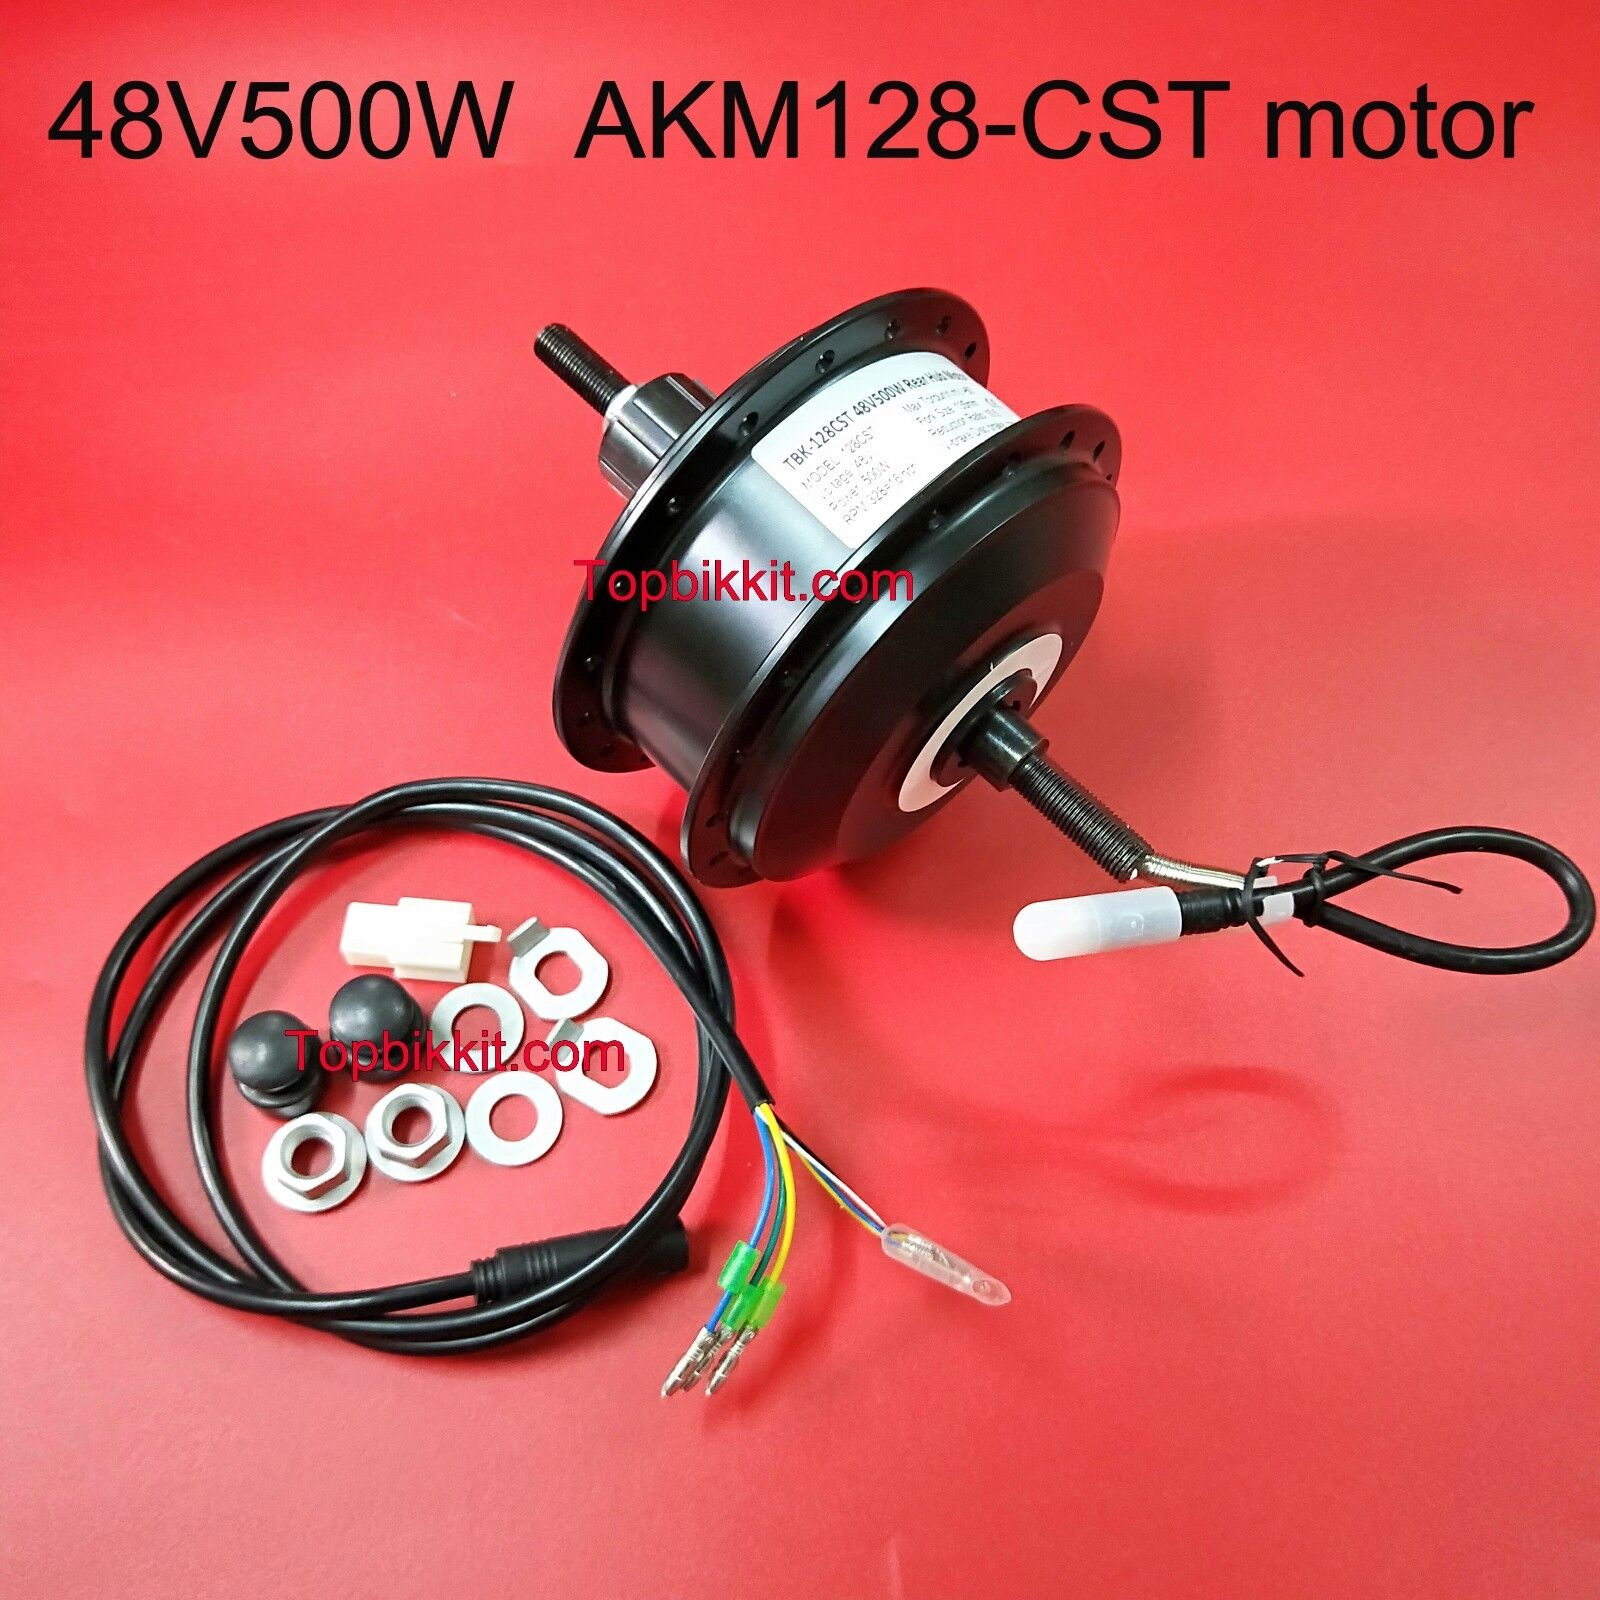 AKM Q128 48V 500W CST Gear Hub Motor for Ebike 135mm RPM-201 or 328 Rear Motor